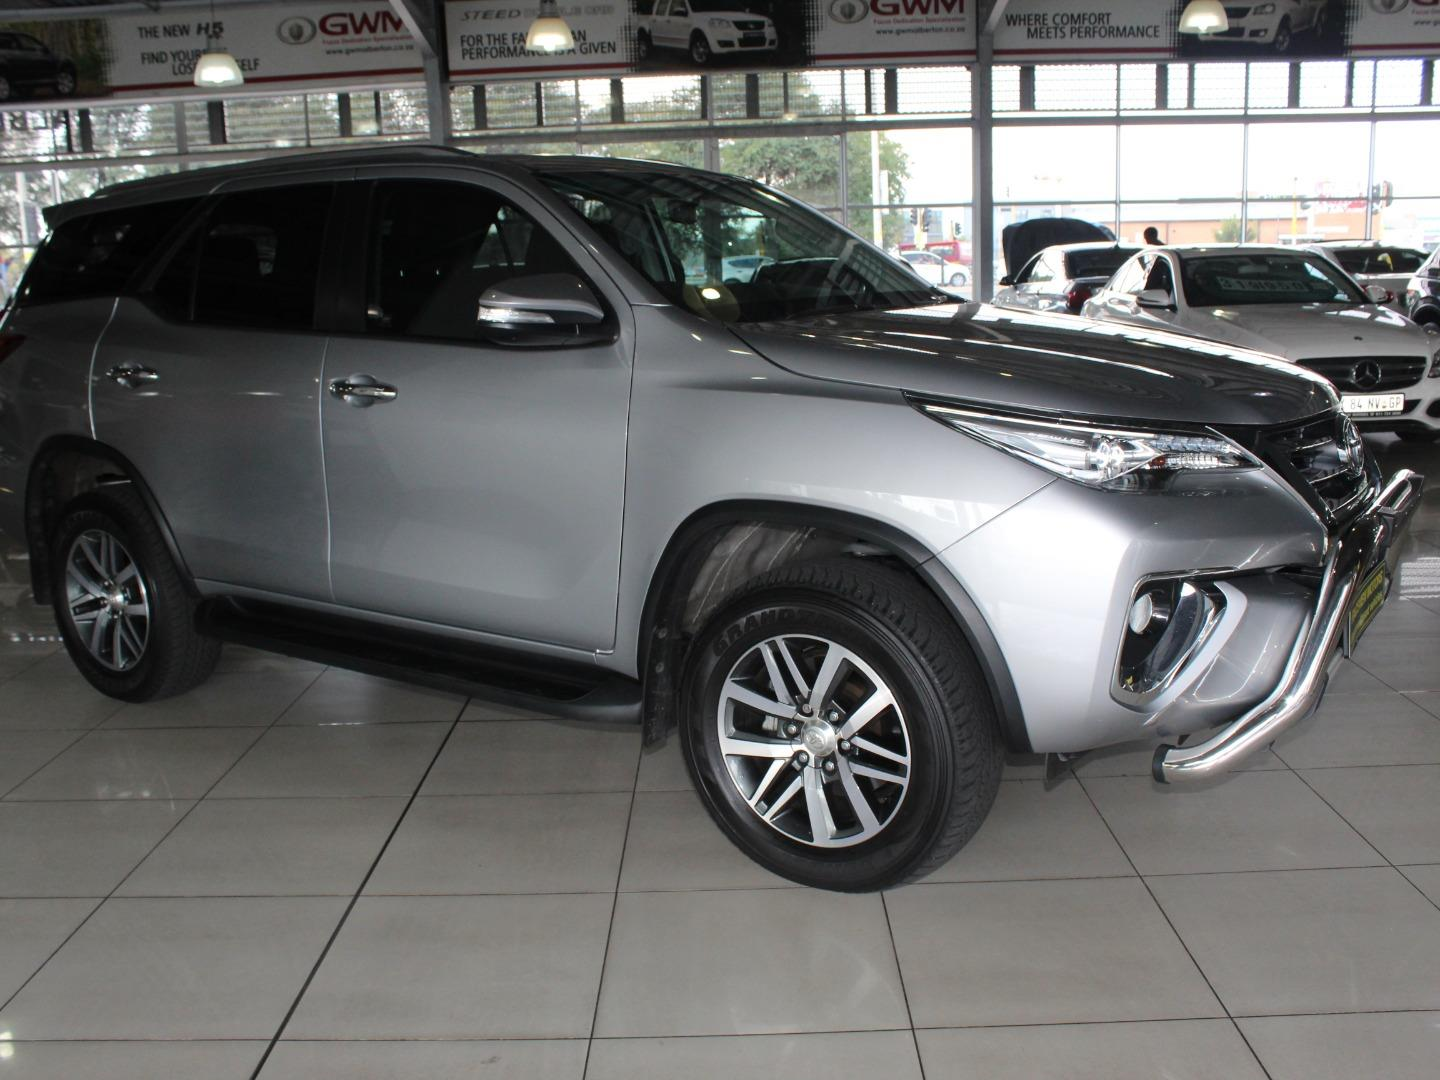 2017 Toyota Fortuner 2.8GD-6 4x4 Auto- Picture 1